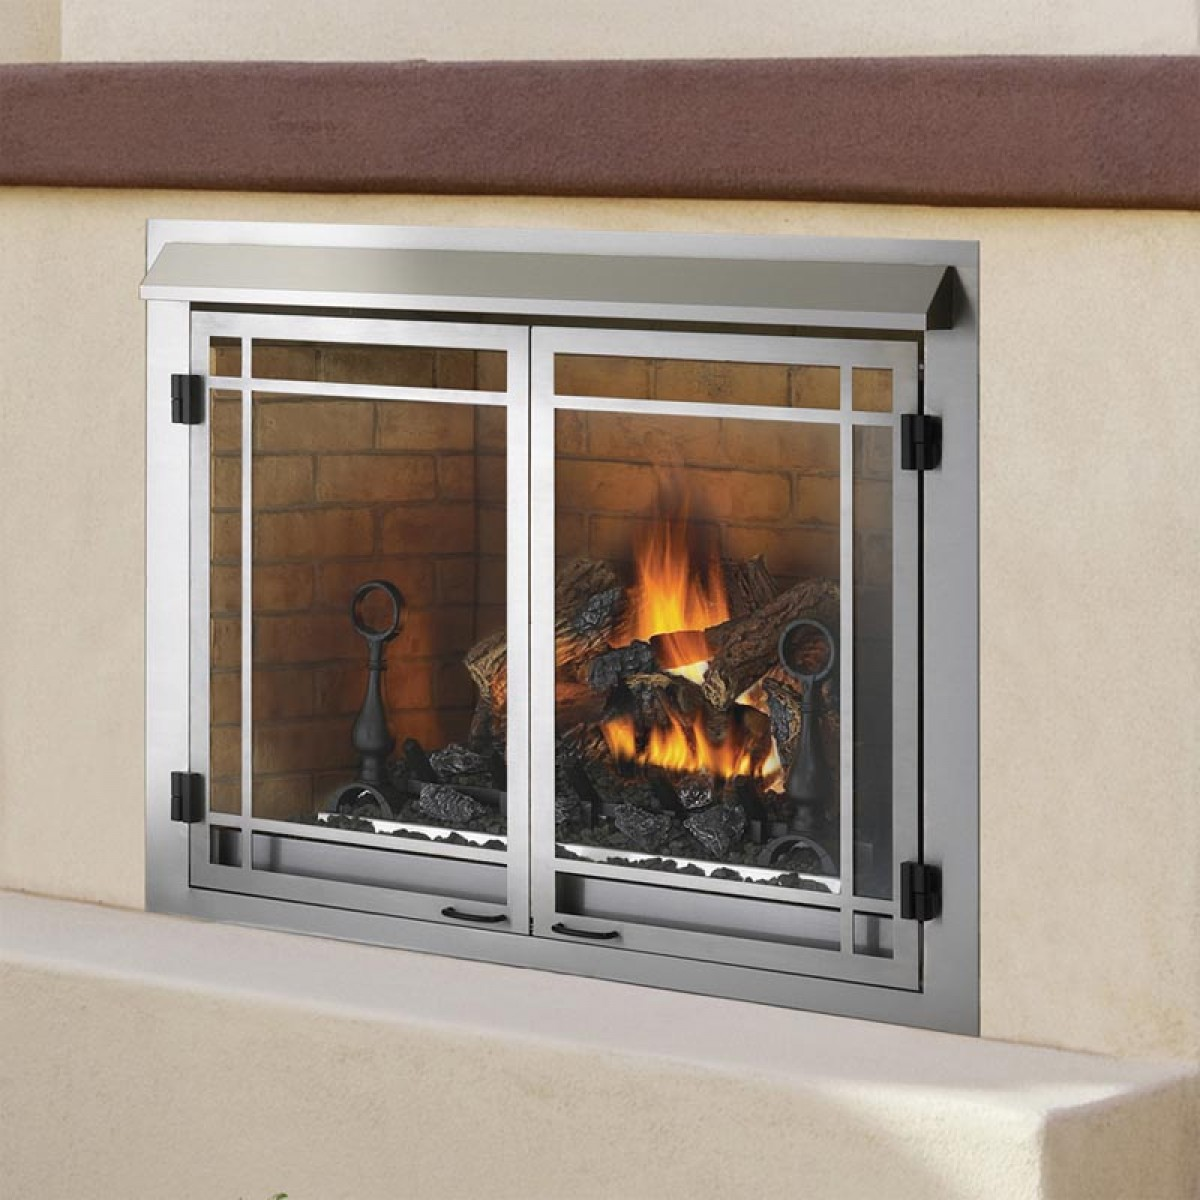 napoleon gss42n outdoor natural gas fireplace at ibuyfireplaces. Black Bedroom Furniture Sets. Home Design Ideas